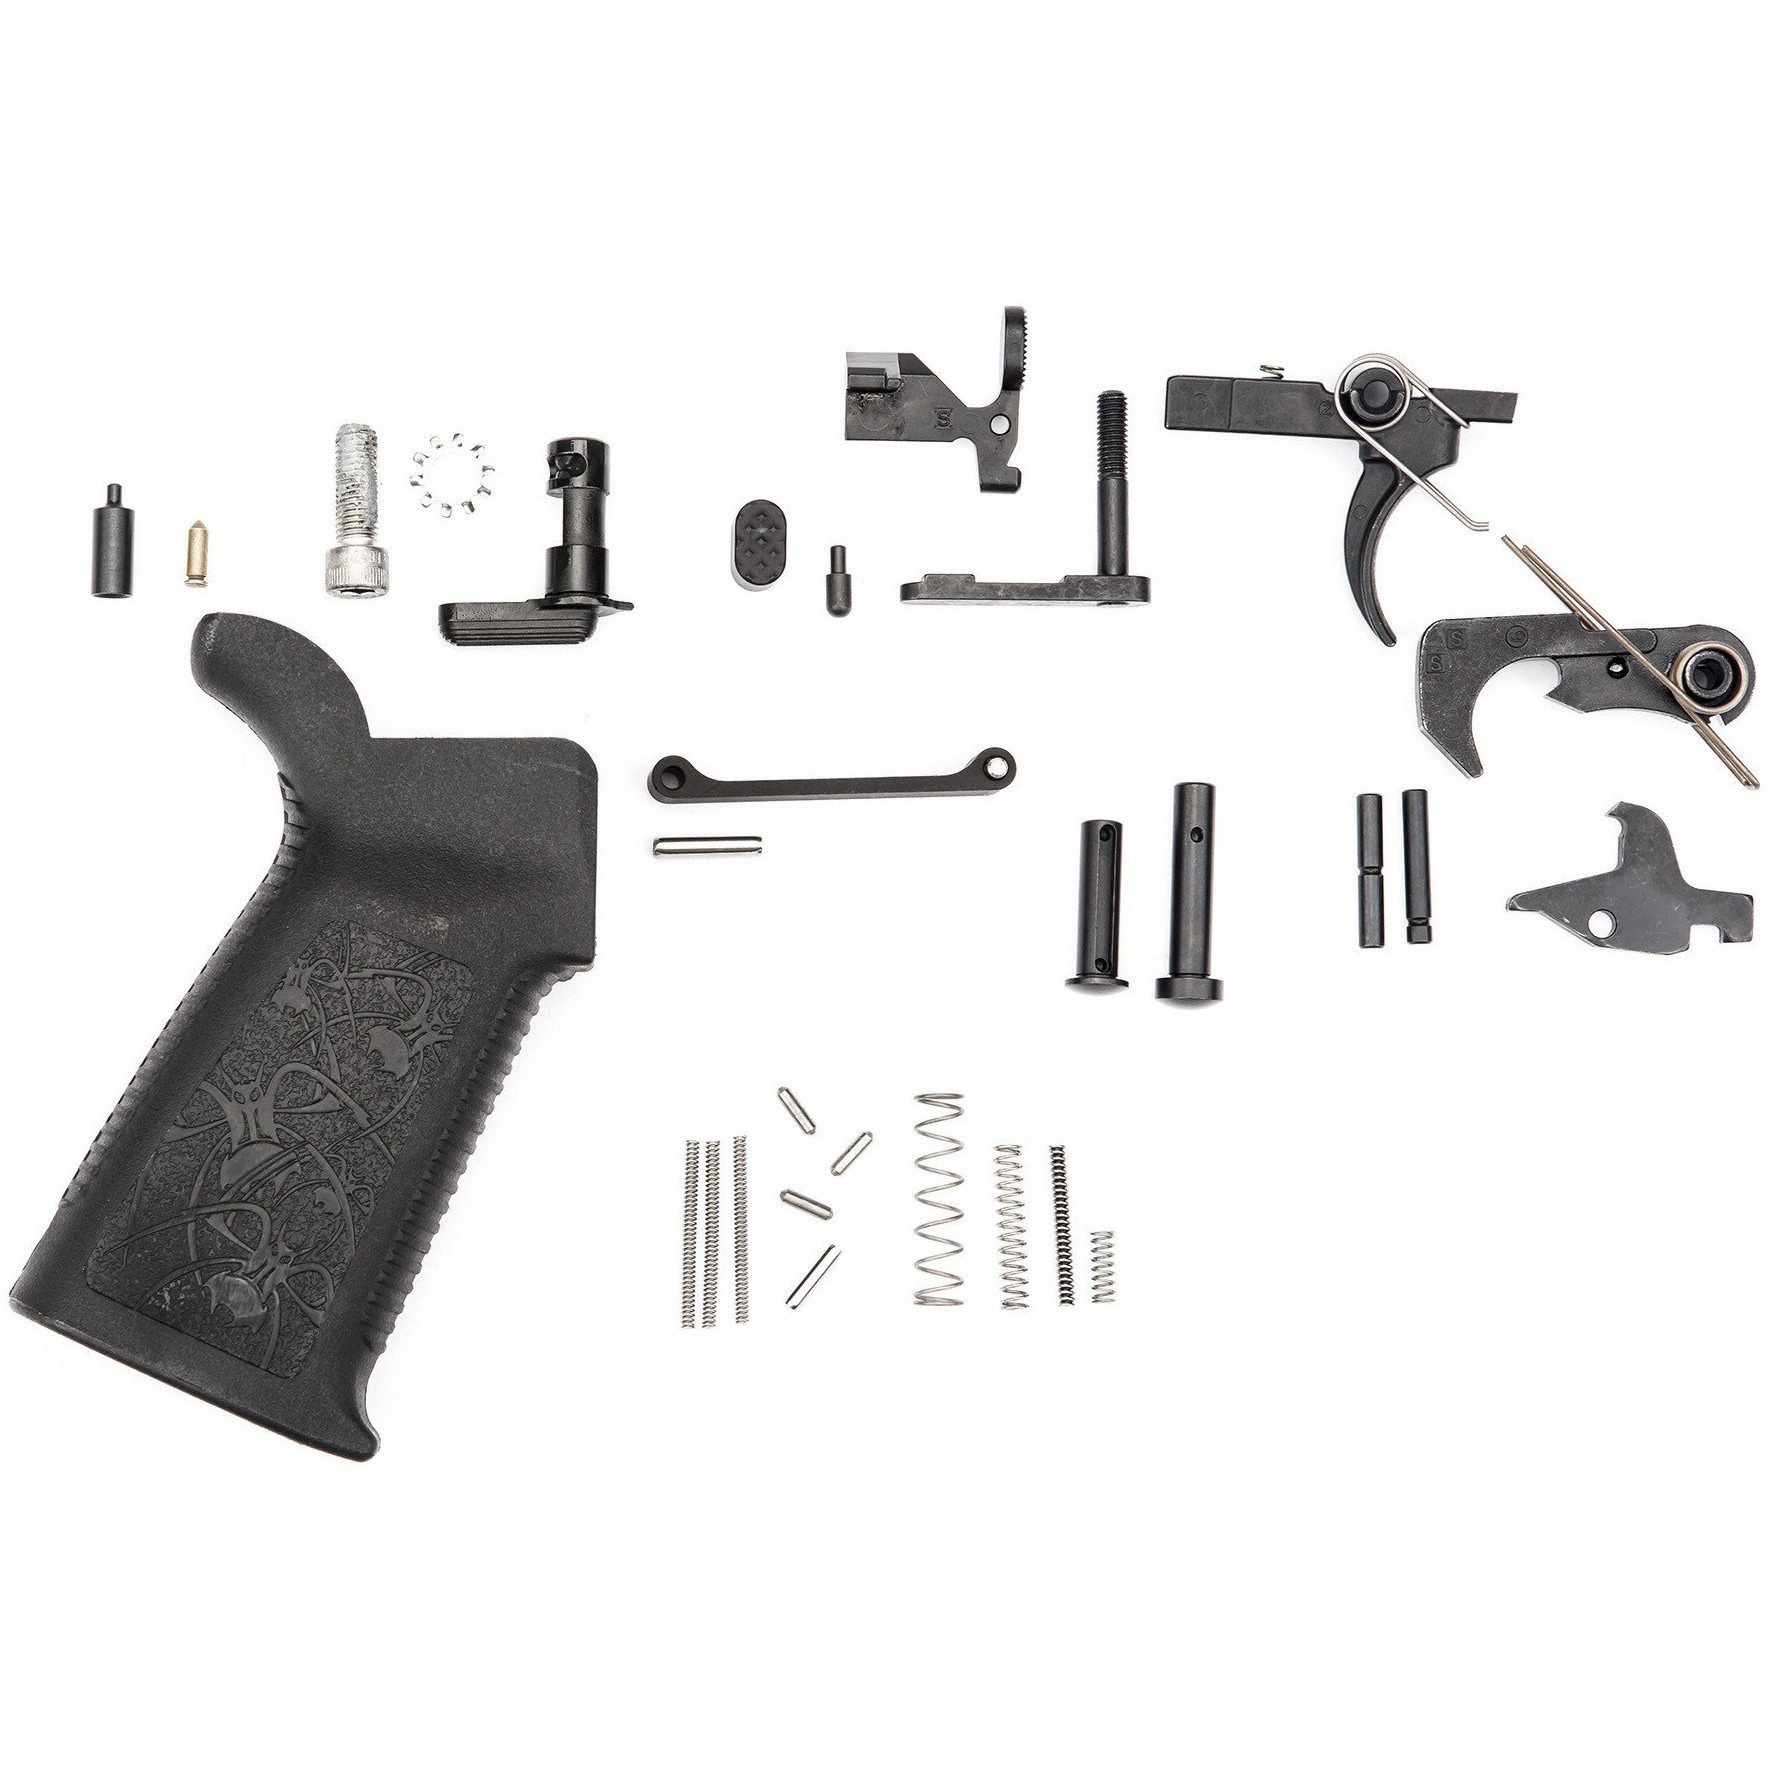 Spikes Tactical AR-15 Standard Lower Receiver Parts Kit